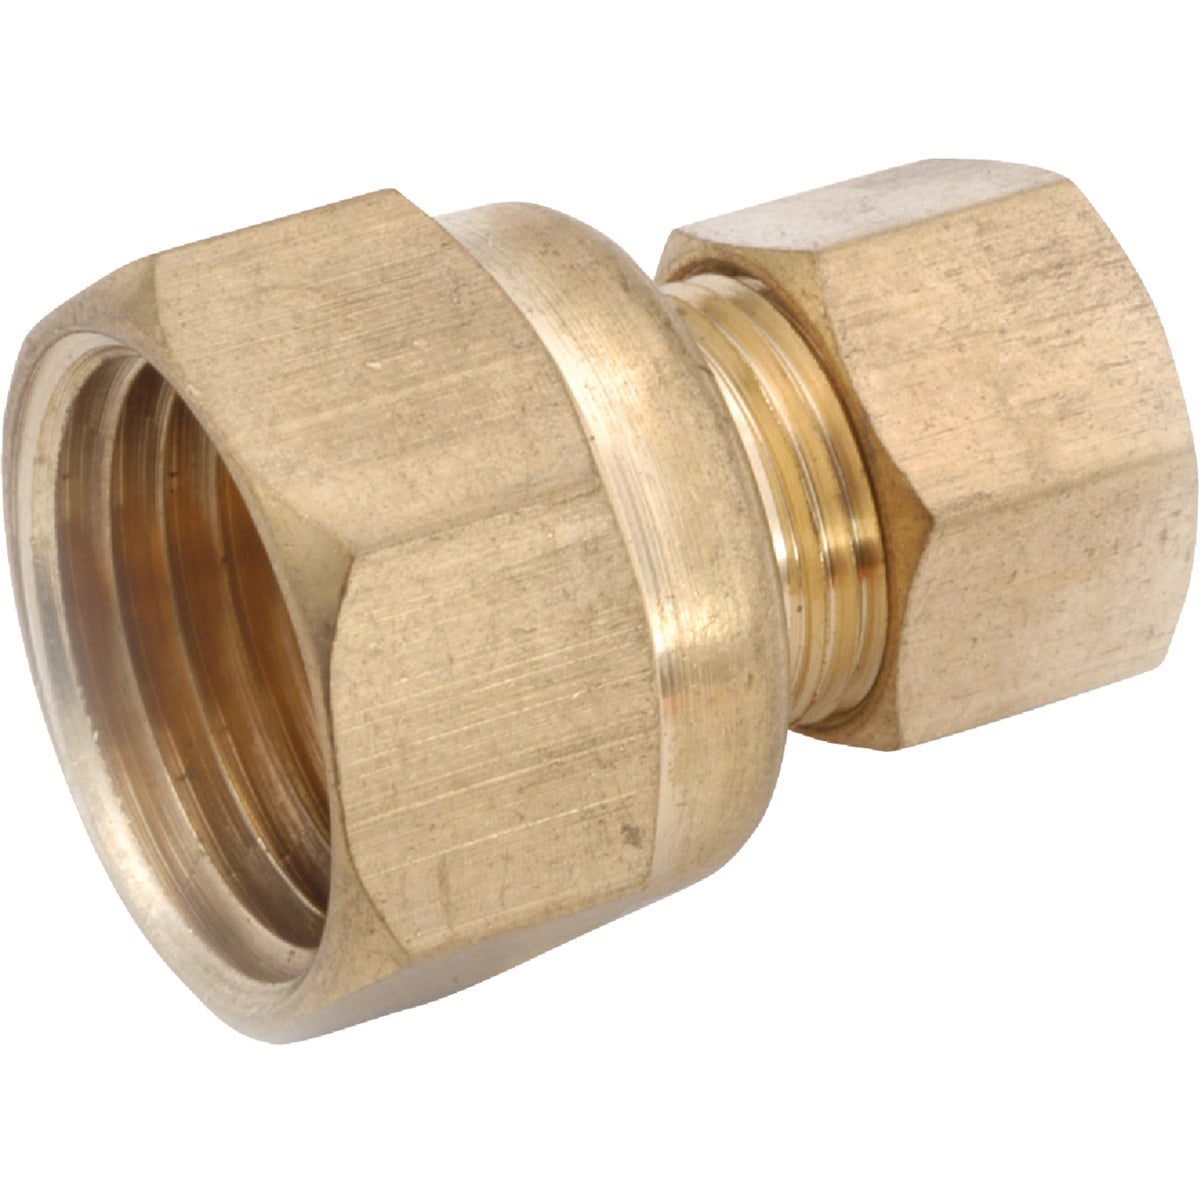 7/8X3/4 FEMALE COUPLING - 750066-1412 by Anderson Metals Corp